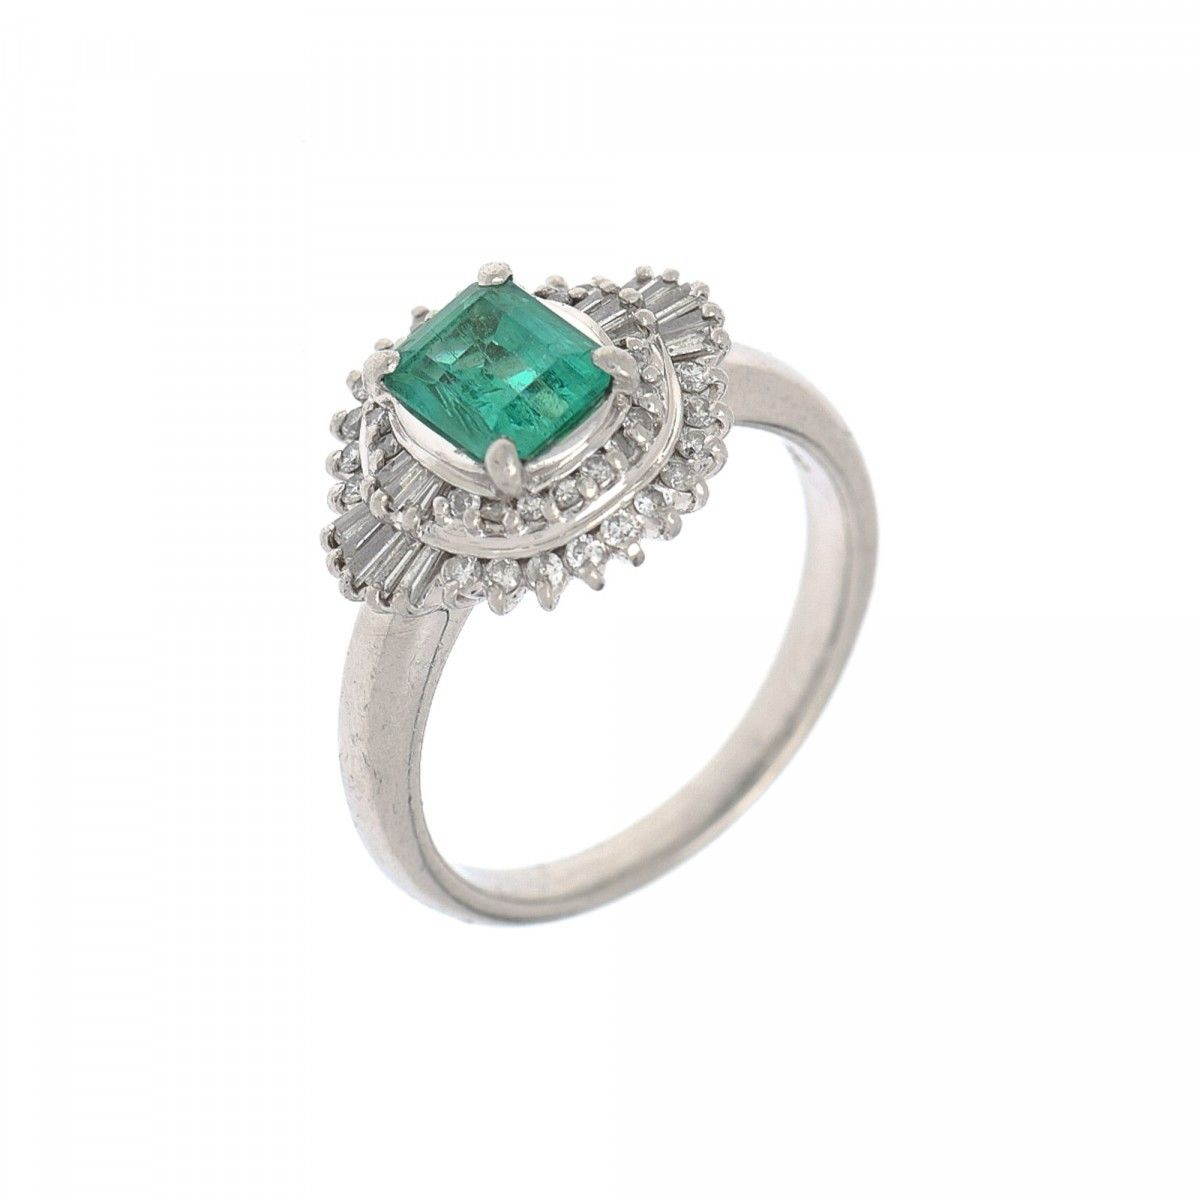 report sale fine large ring diamond jewelry emerald collections rings platinum estate gia pt colombian hawaii